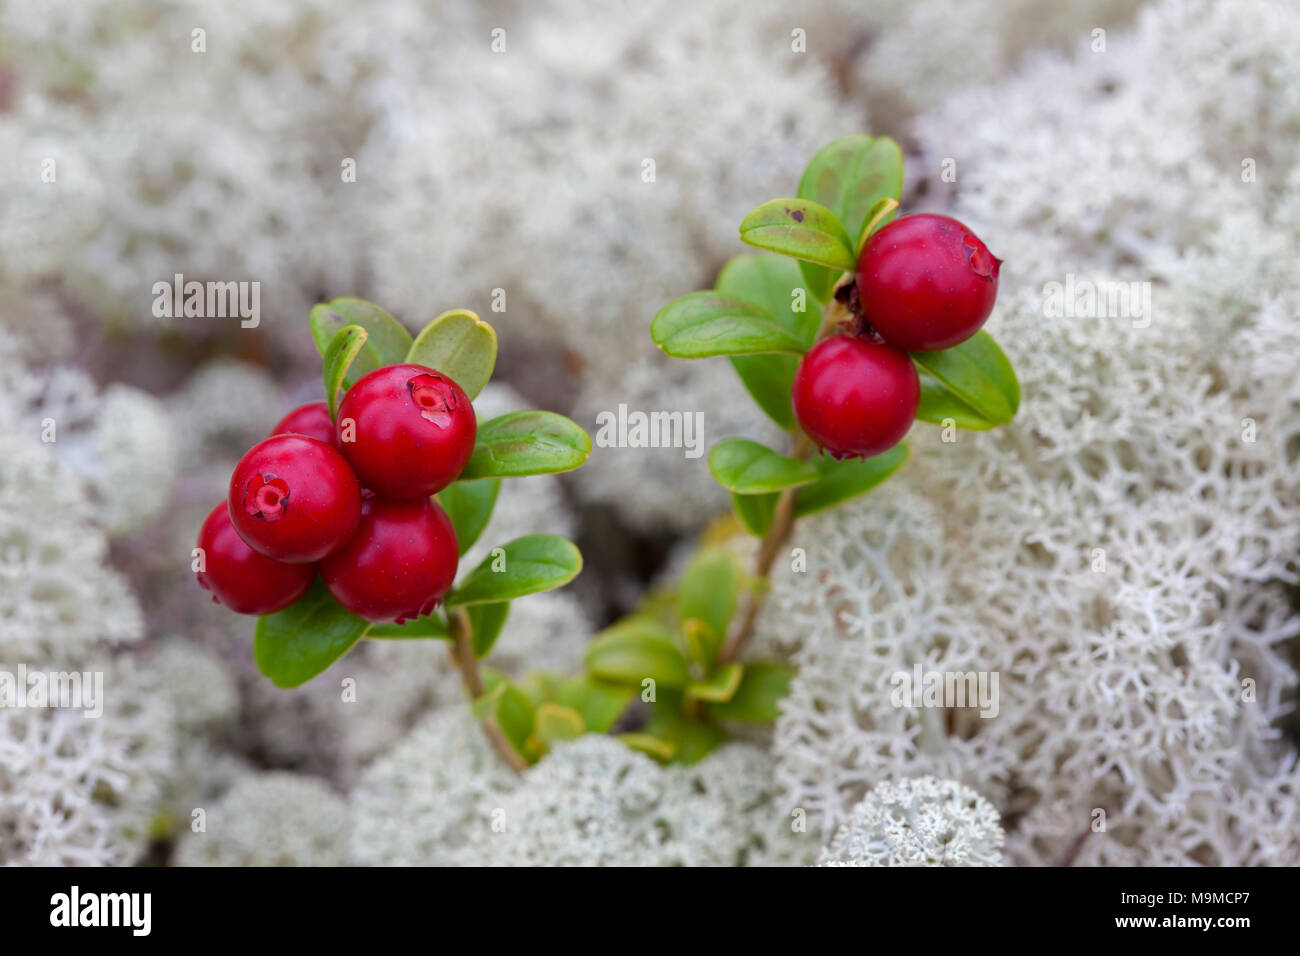 Lingonberry / cowberry / lowbush cranberry / partridgeberry (Vaccinium vitis-idaea) showing ripe red berries among reindeer lichen - Stock Image